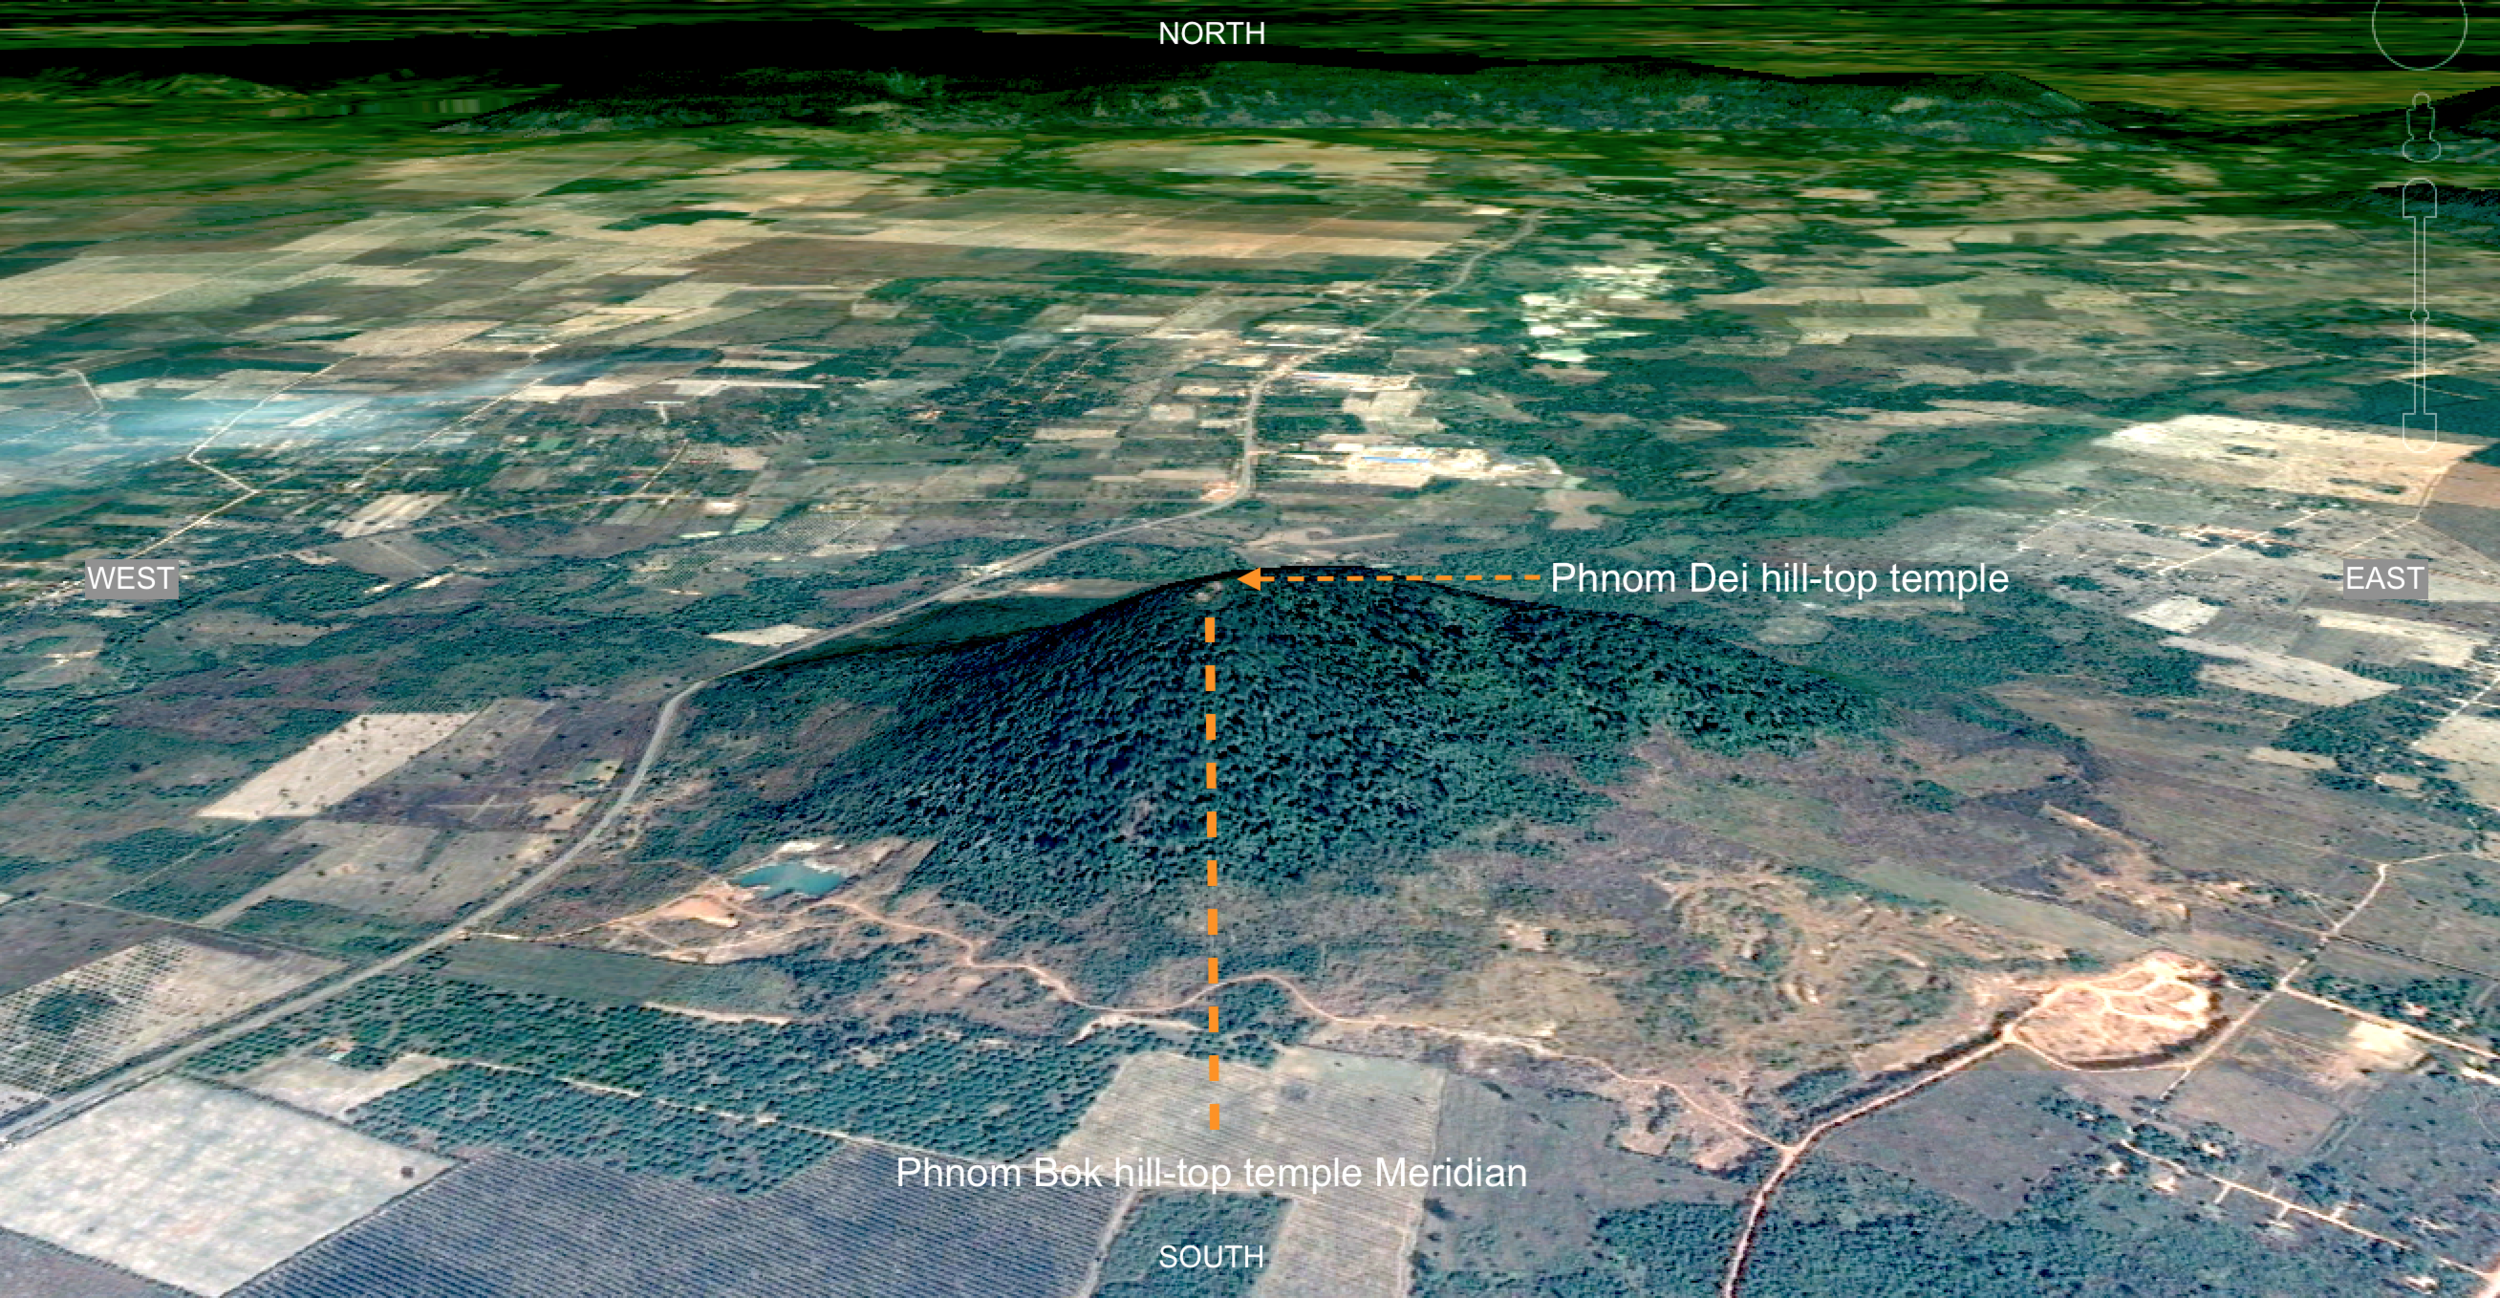 Phnom Dei hill-top temple is the key to unlocking the extended Khmer sacred geographies.